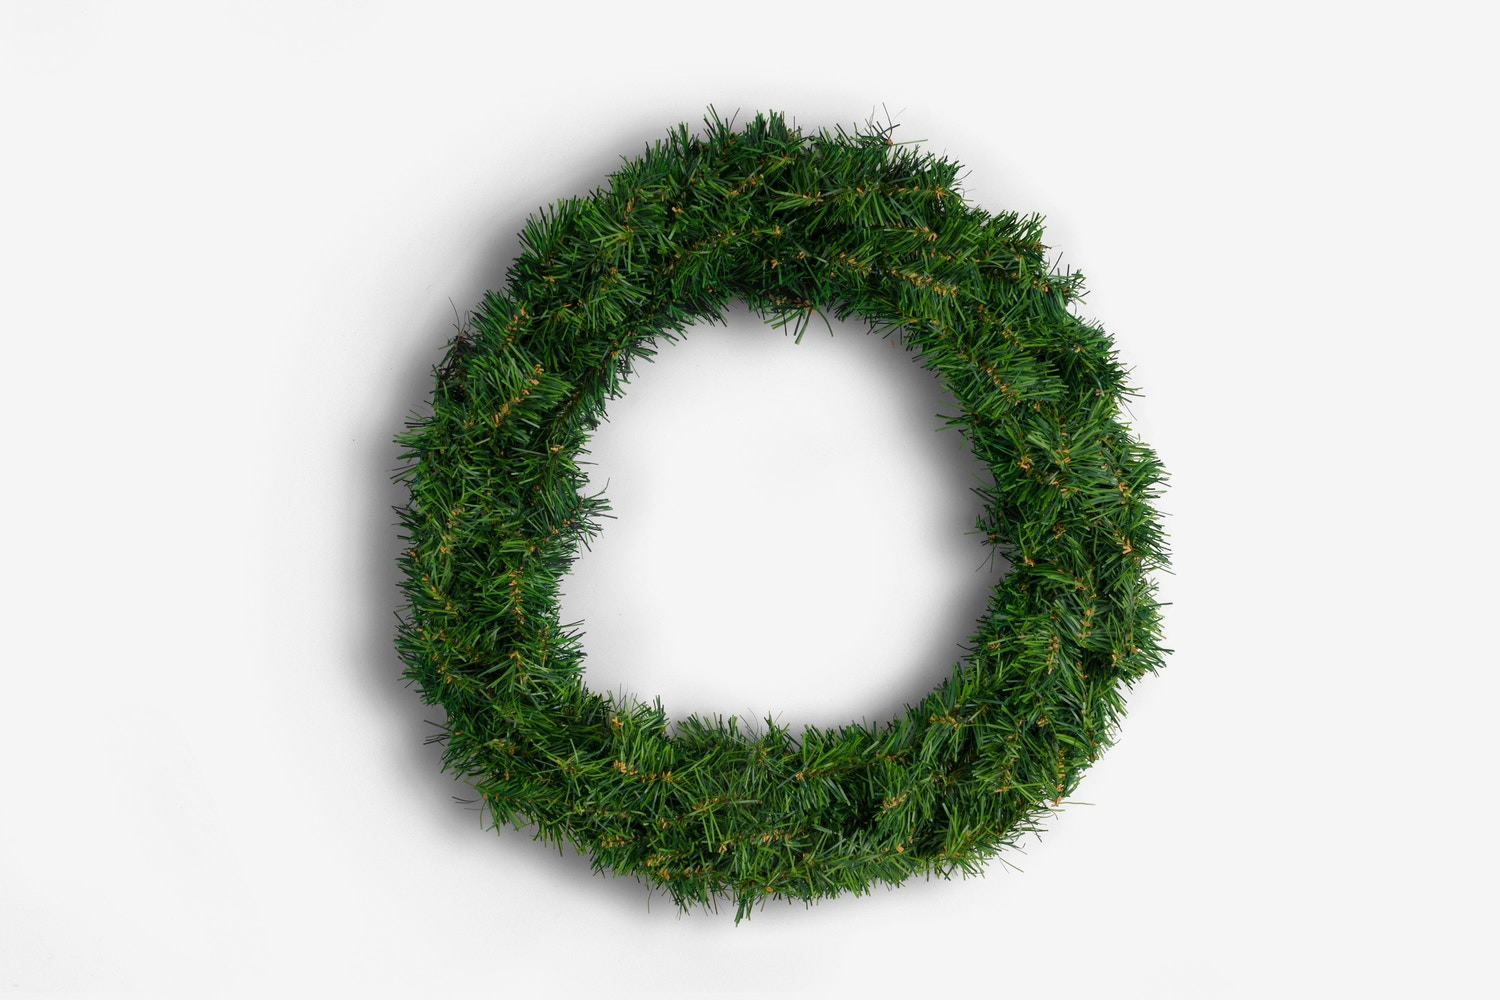 Christmas Wreath Isolate - Single por Original Mockups en Original Mockups